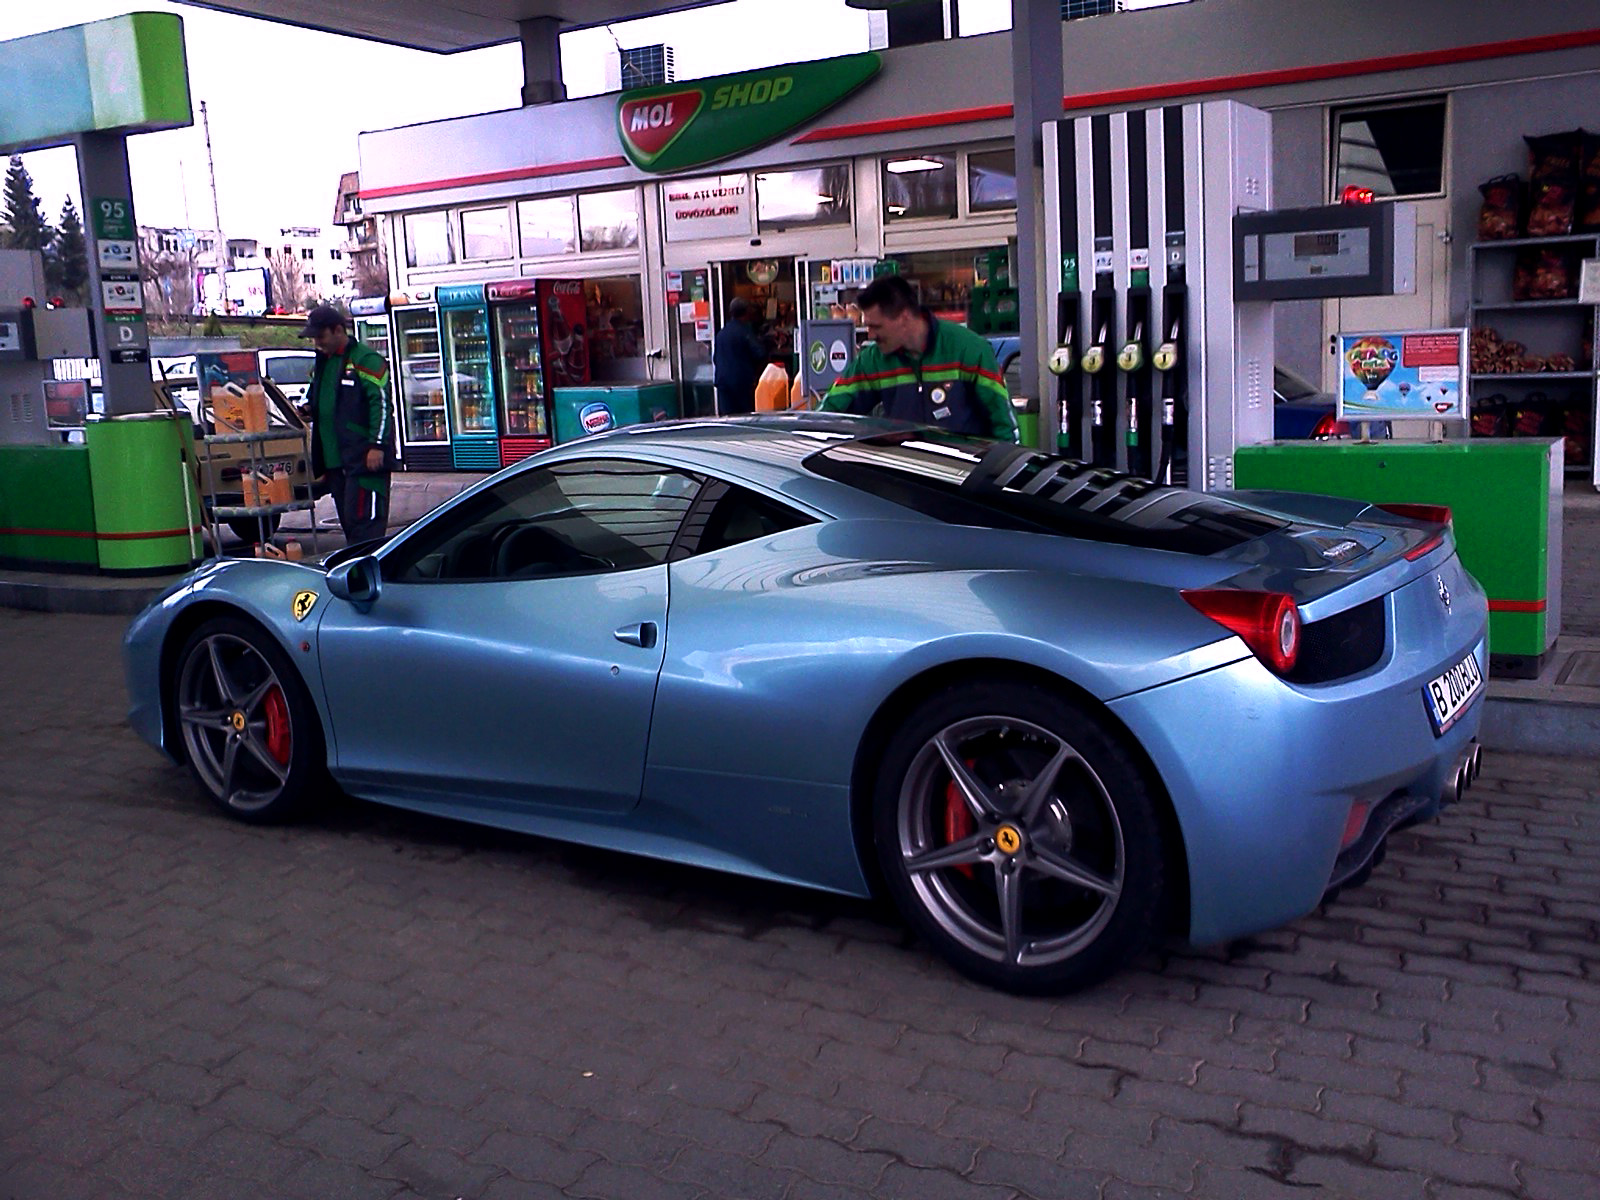 video blue ferrari 458 italia spotted in romania - Ferrari 458 Blue And White